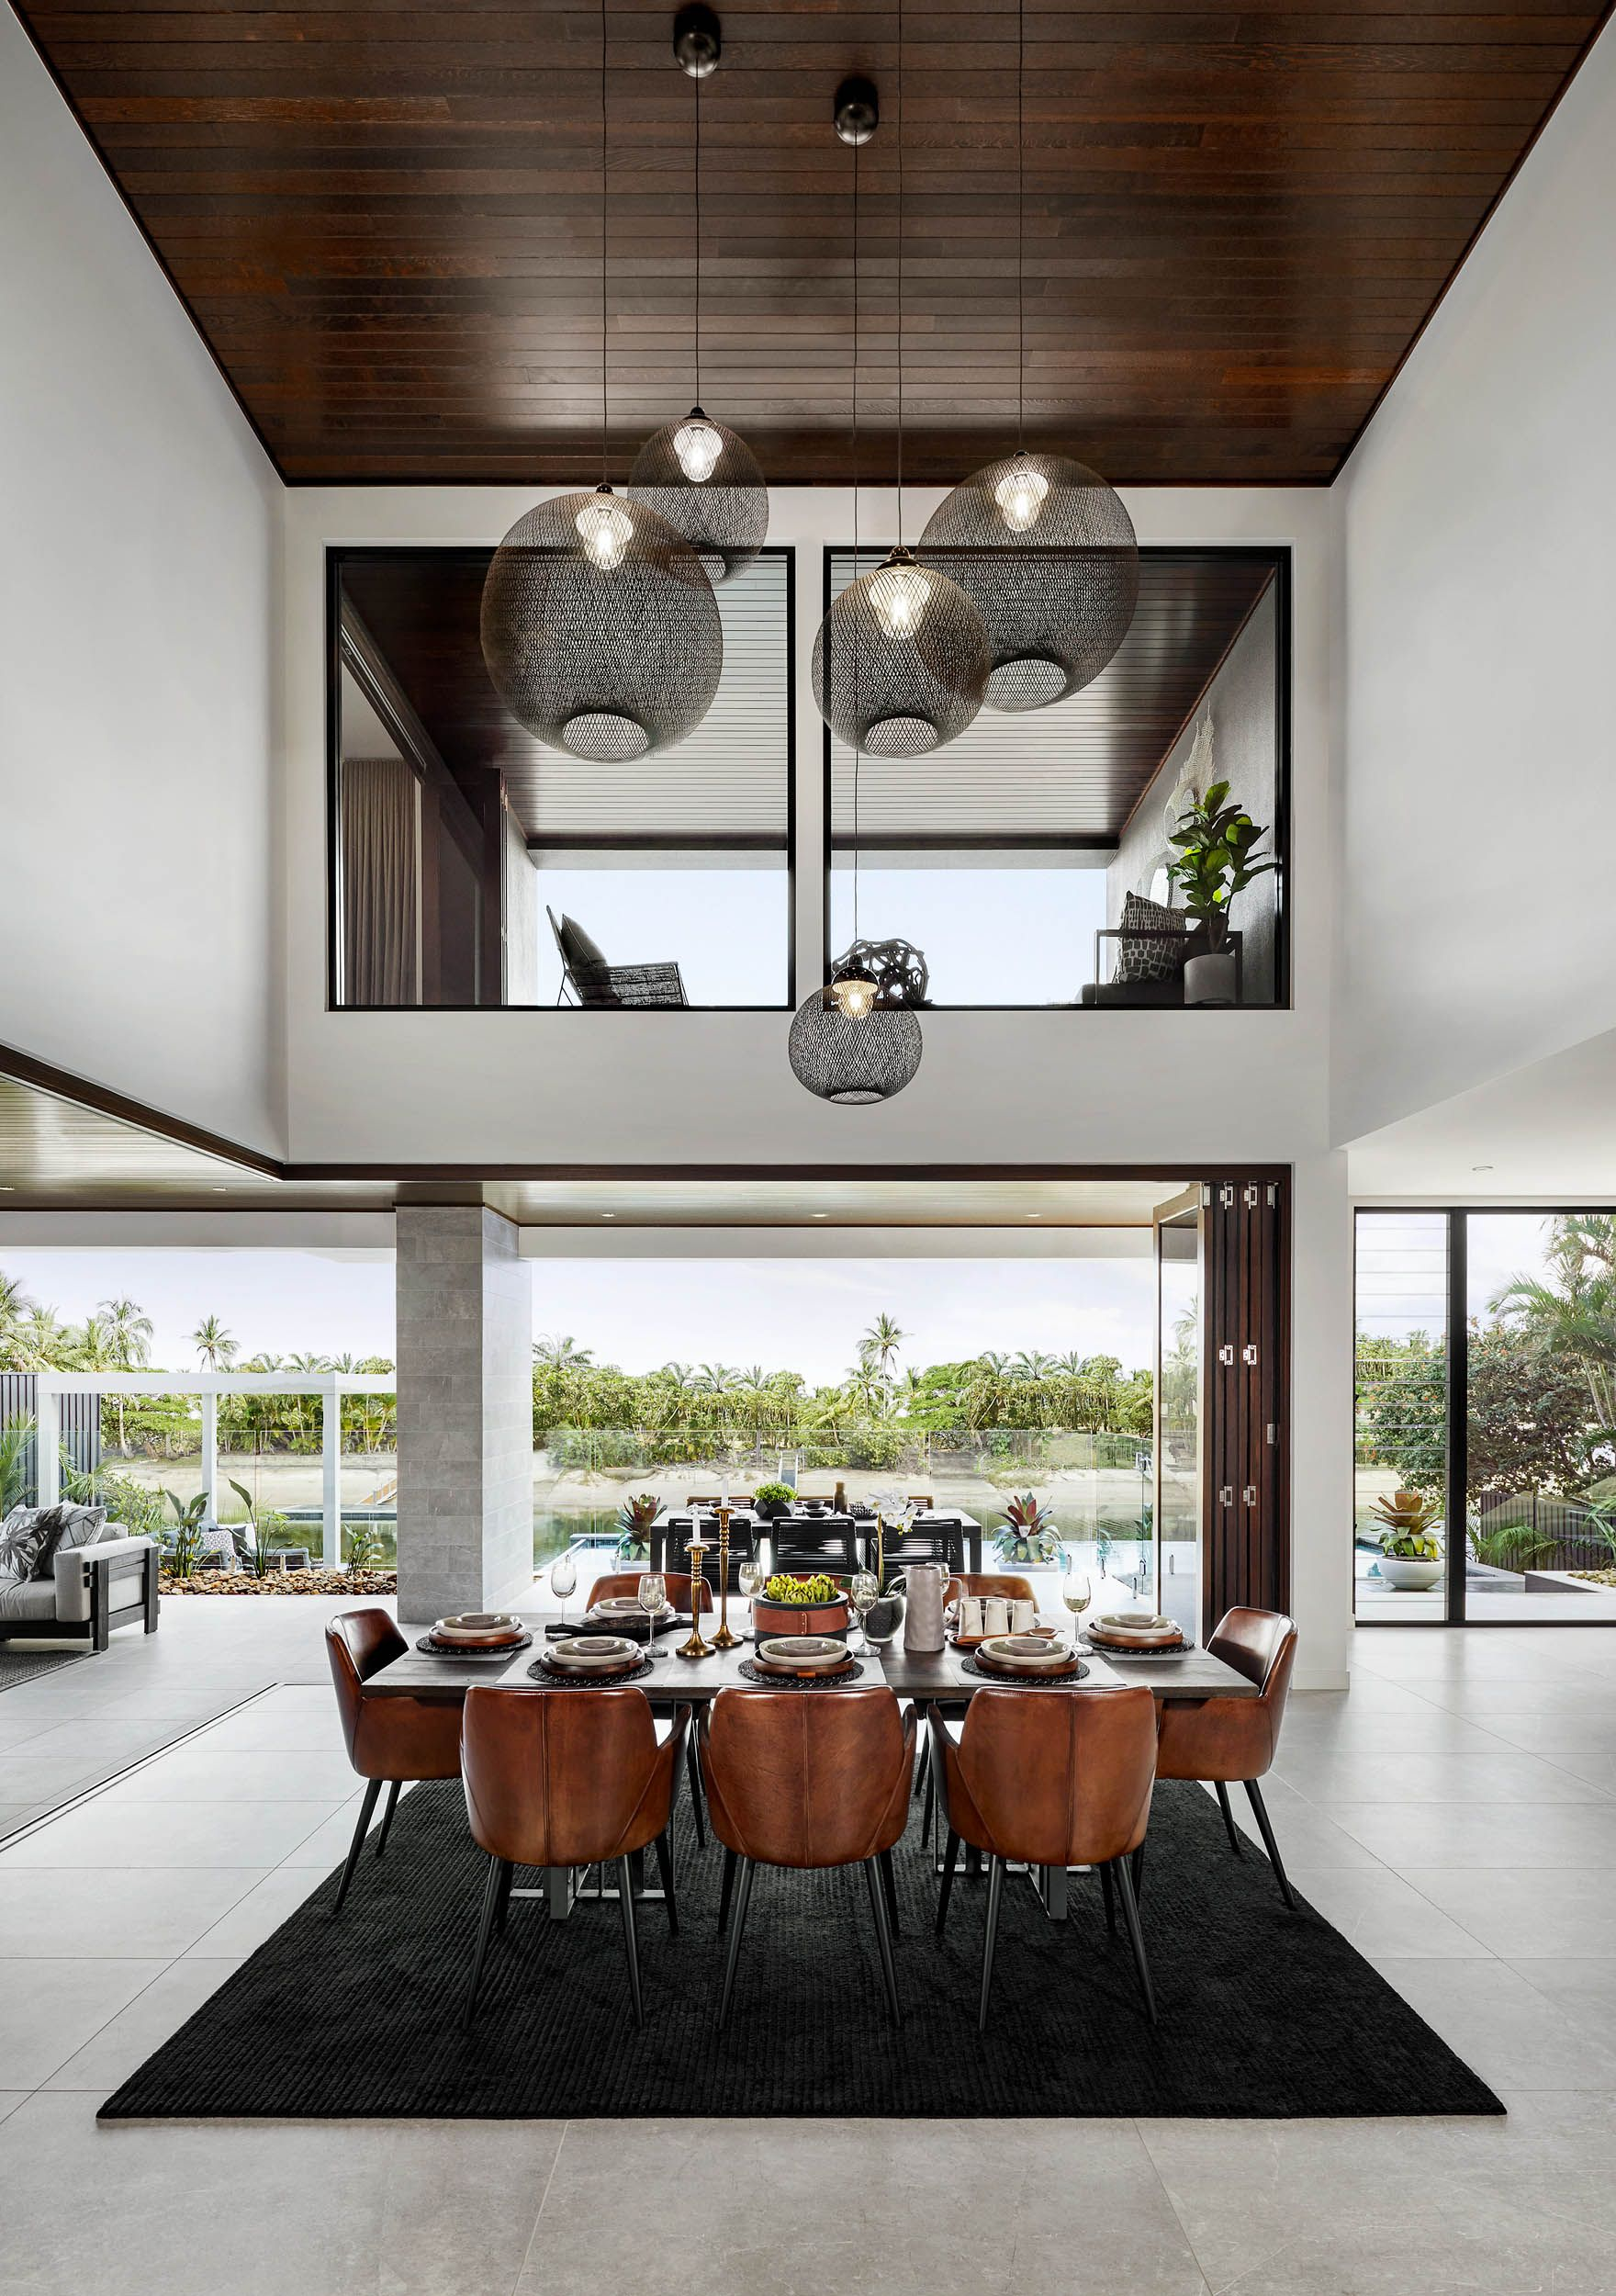 Dining Void The Signature By Metricon Riviera On Display In Sorrento Qld Contemporary House Home Interior Design Dining Room Design